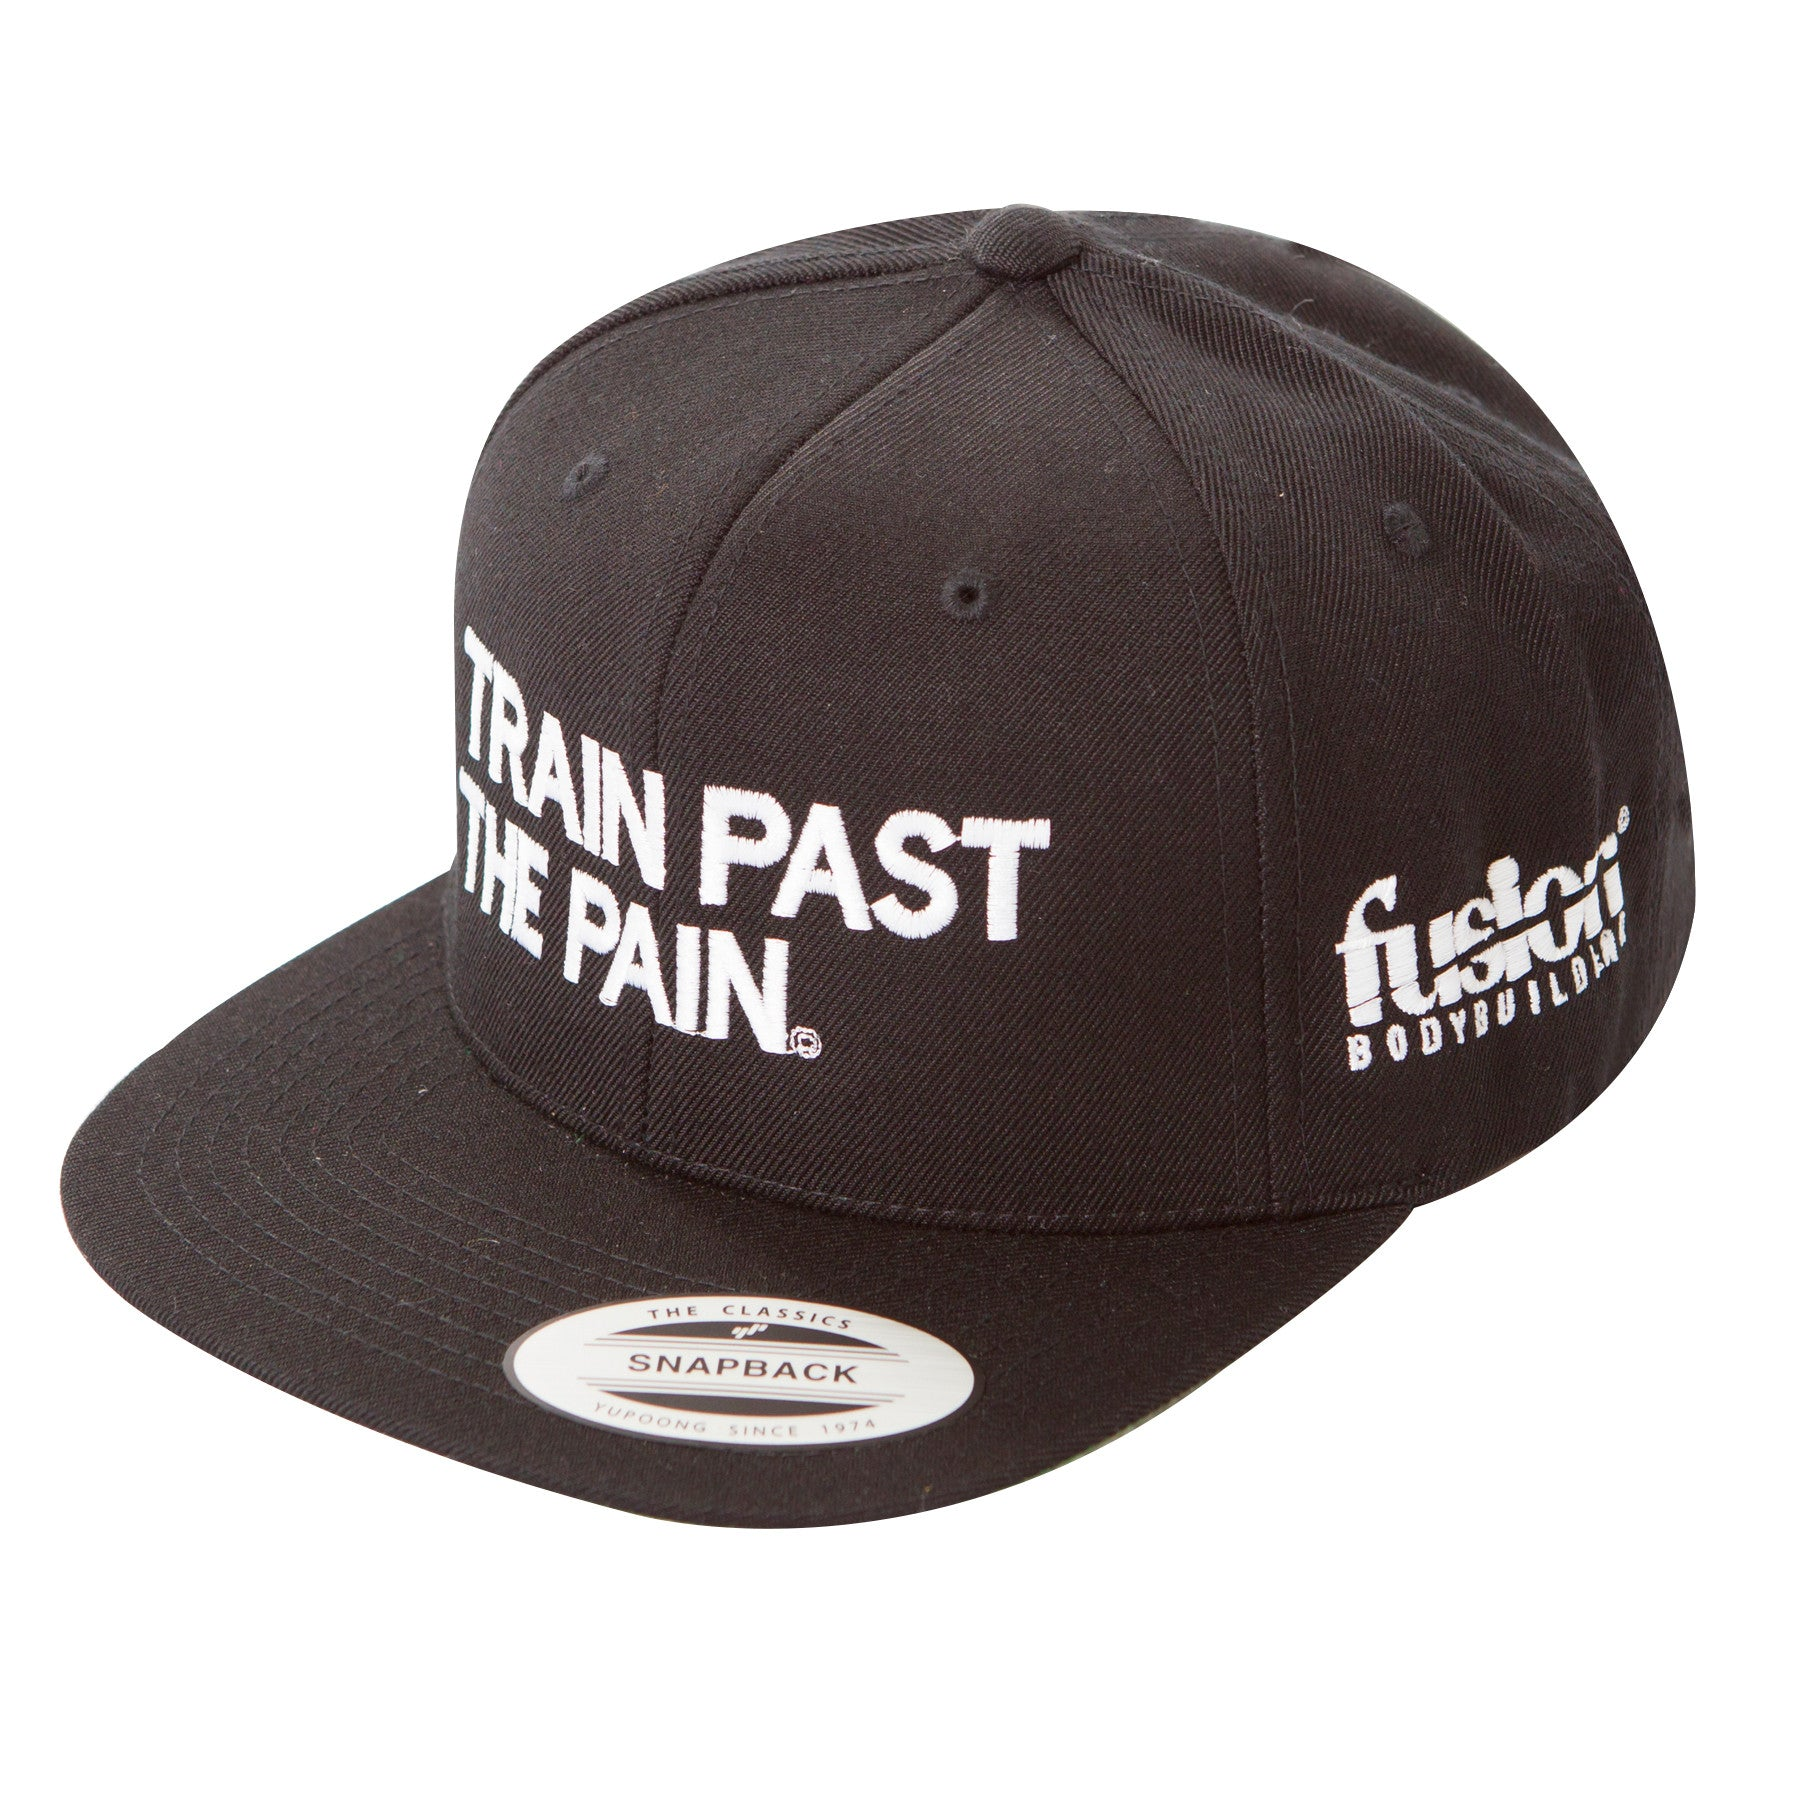 TRAIN PAST THE PAIN FLAT-BILL SNAPBACK HAT